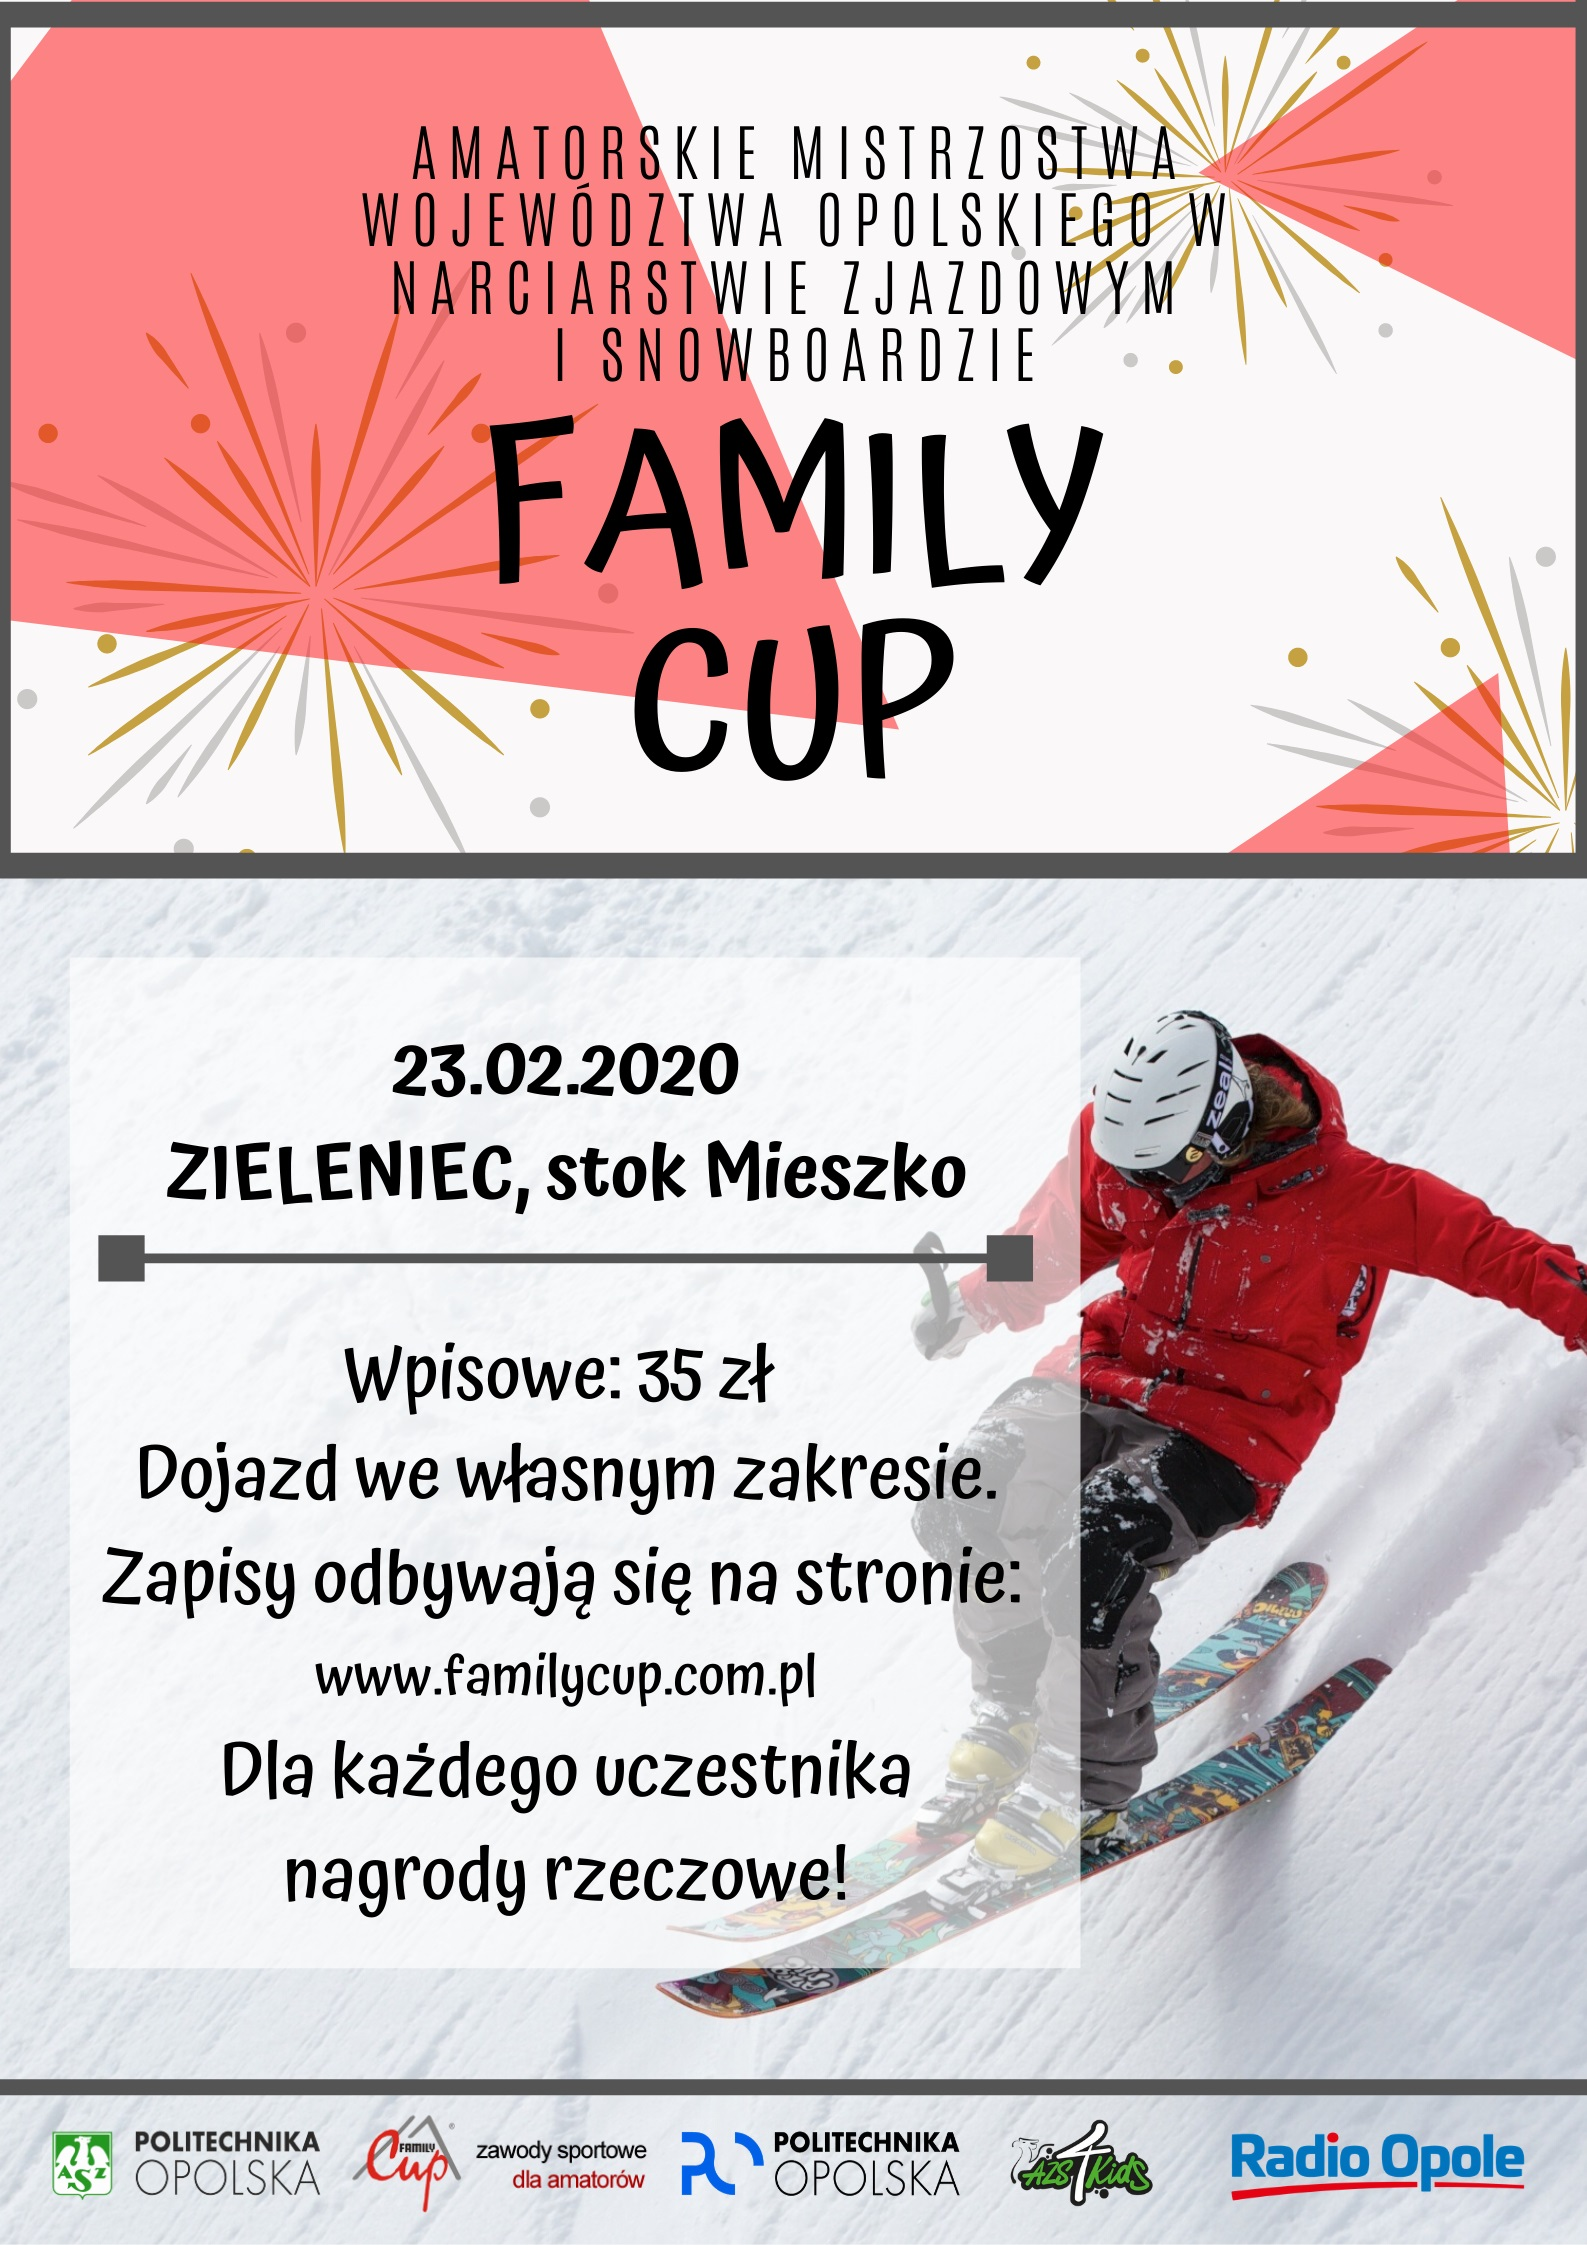 Family Cup 2020, plakat, AZS PO